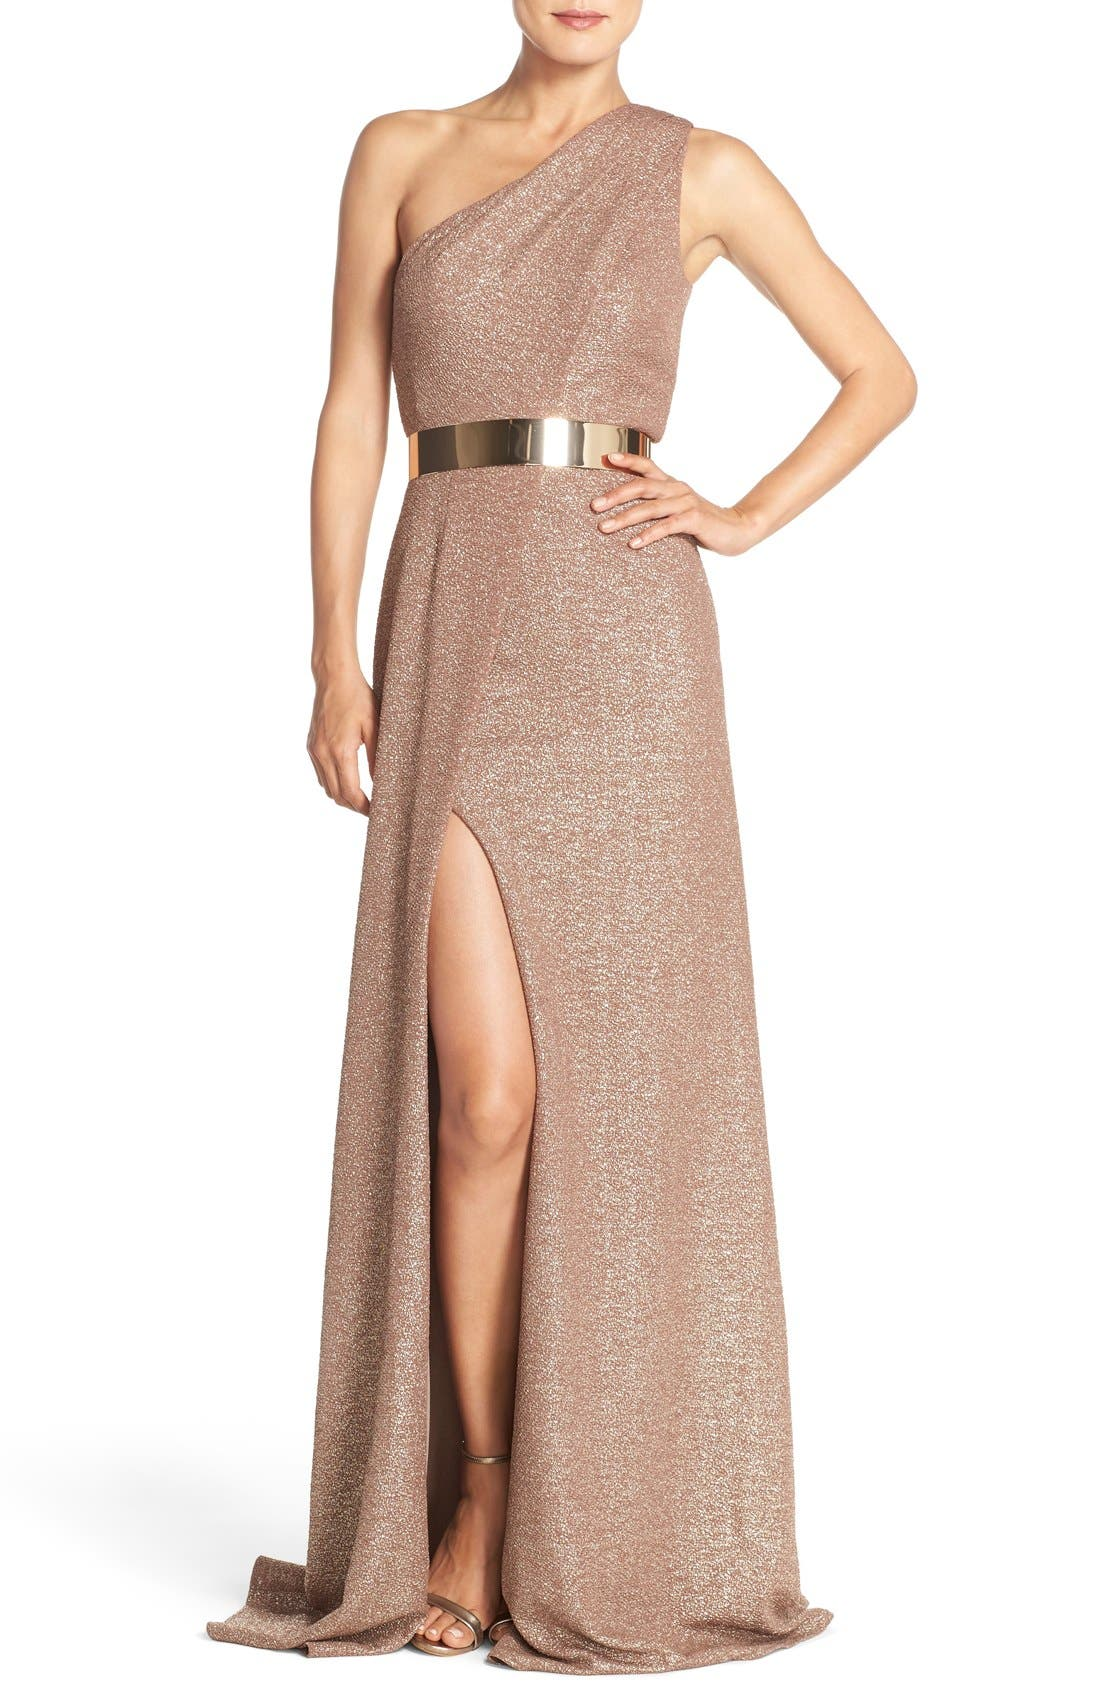 Alternate Image 1 Selected - David Meister Belted Metallic Knit Gown